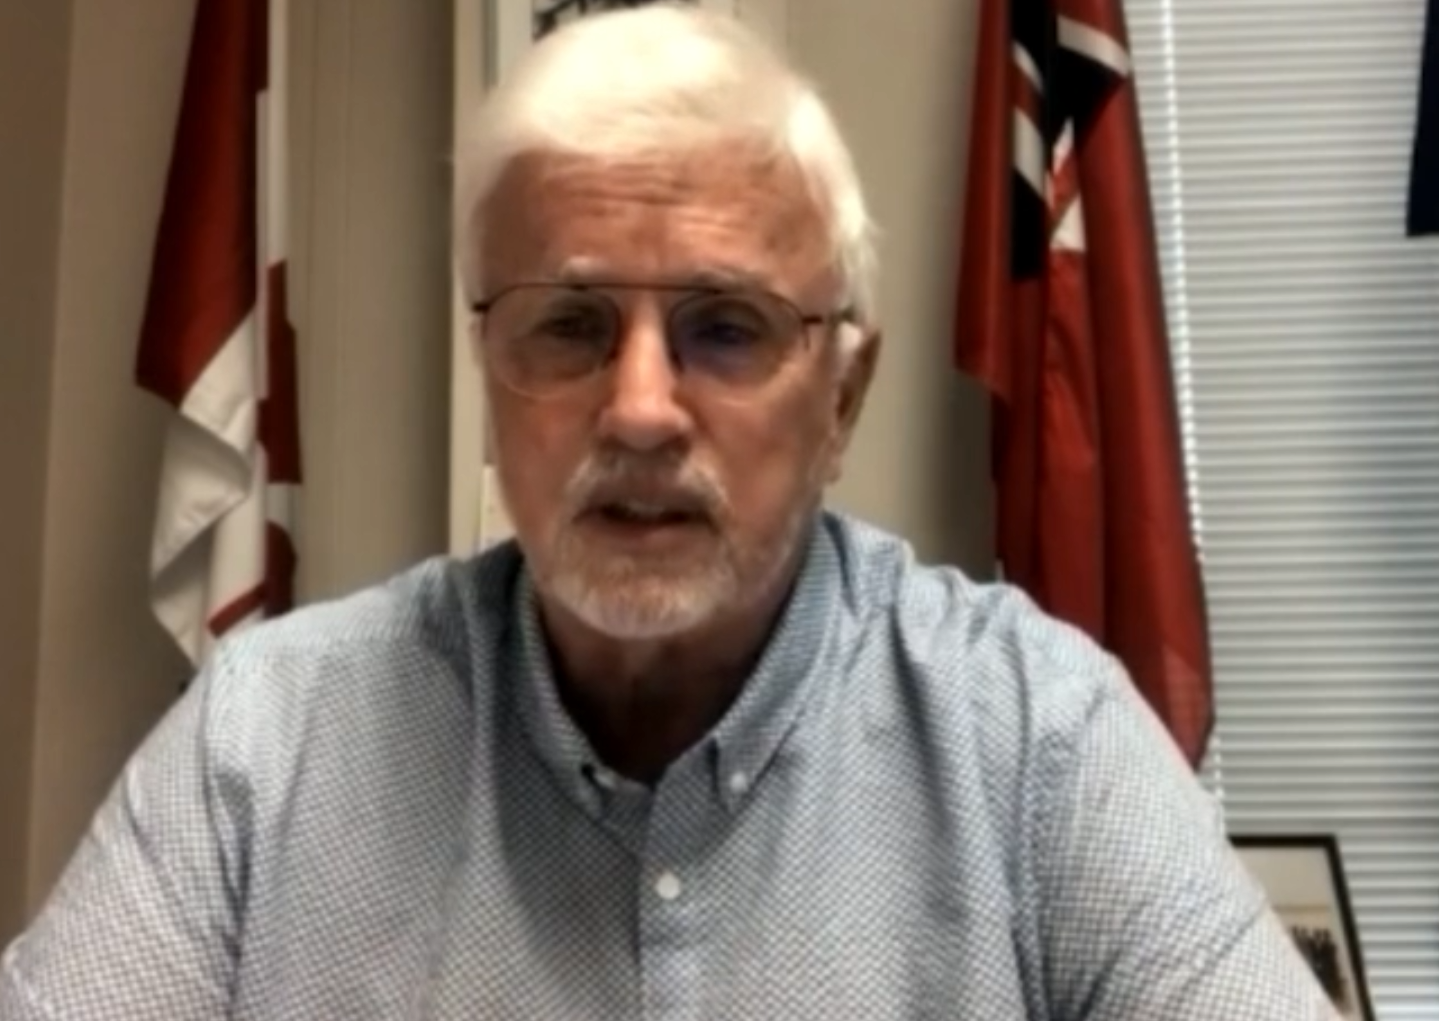 MPP shares vaccine misinformation in interview after being turfed from PCs